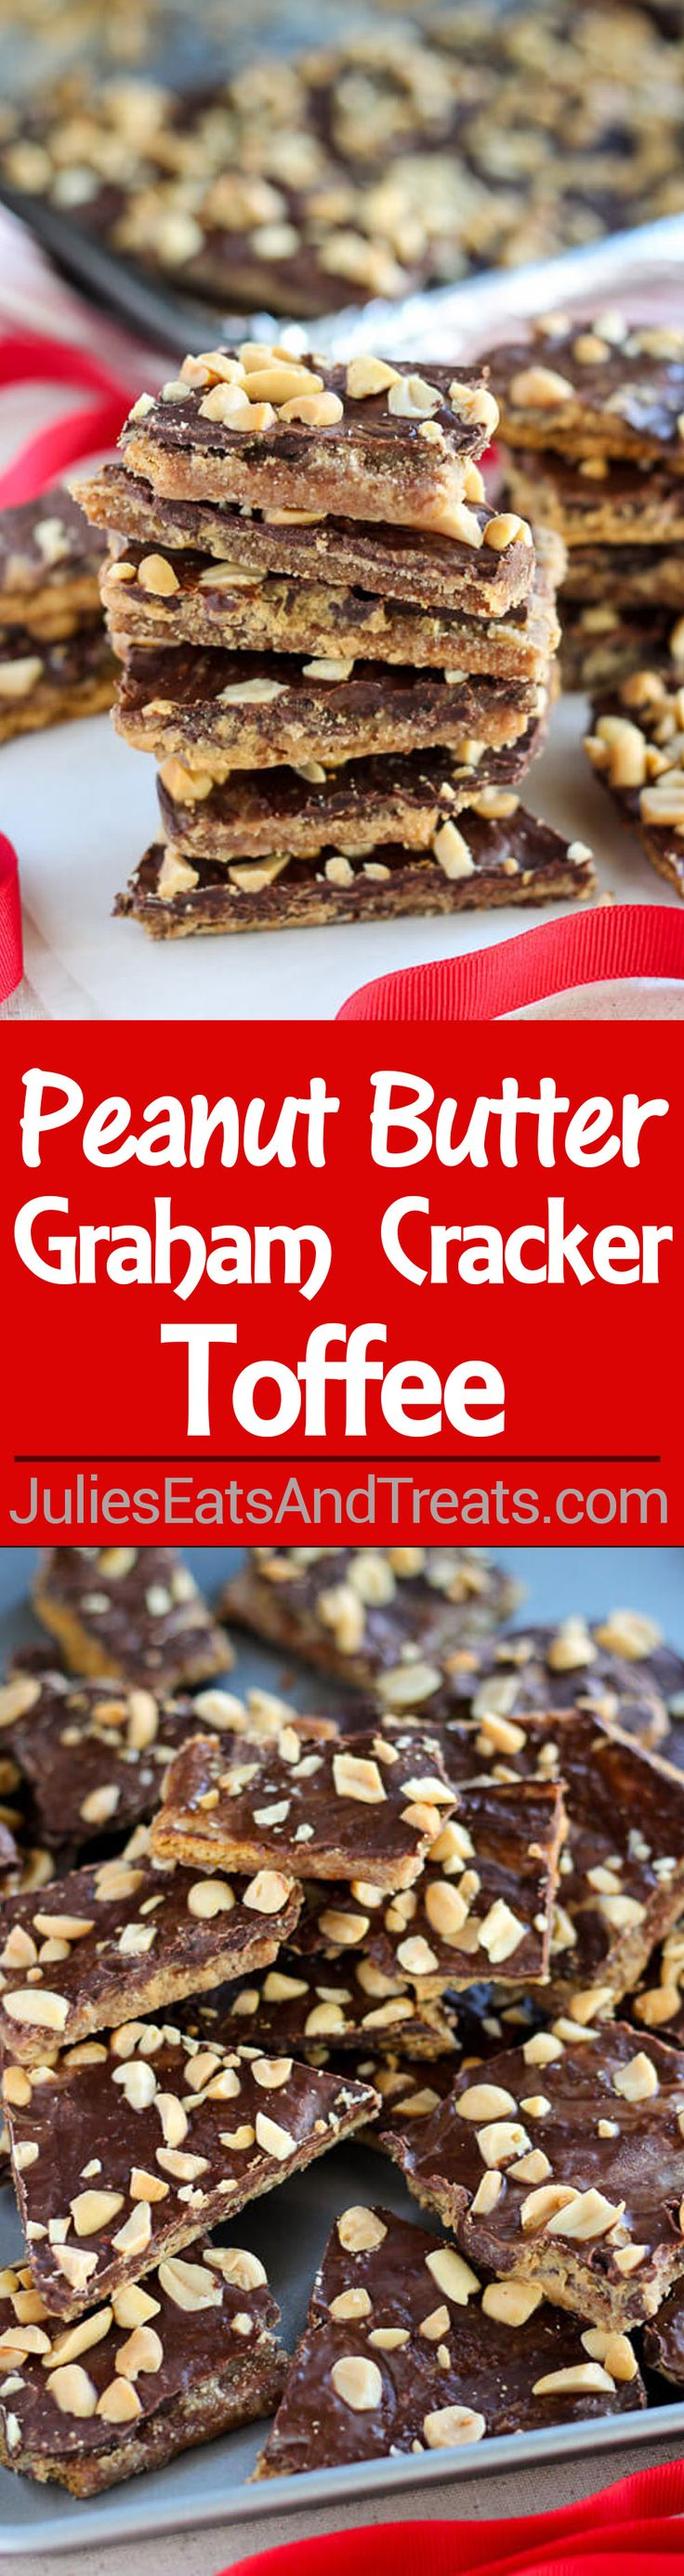 Peanut Butter Graham Cracker Toffee Recipe – Peanut butter and chocolate combine in this easy graham cracker toffee. Sweet and salty with crunchy buttery layers. No candy thermometer needed! on MyRecipeMagic.com